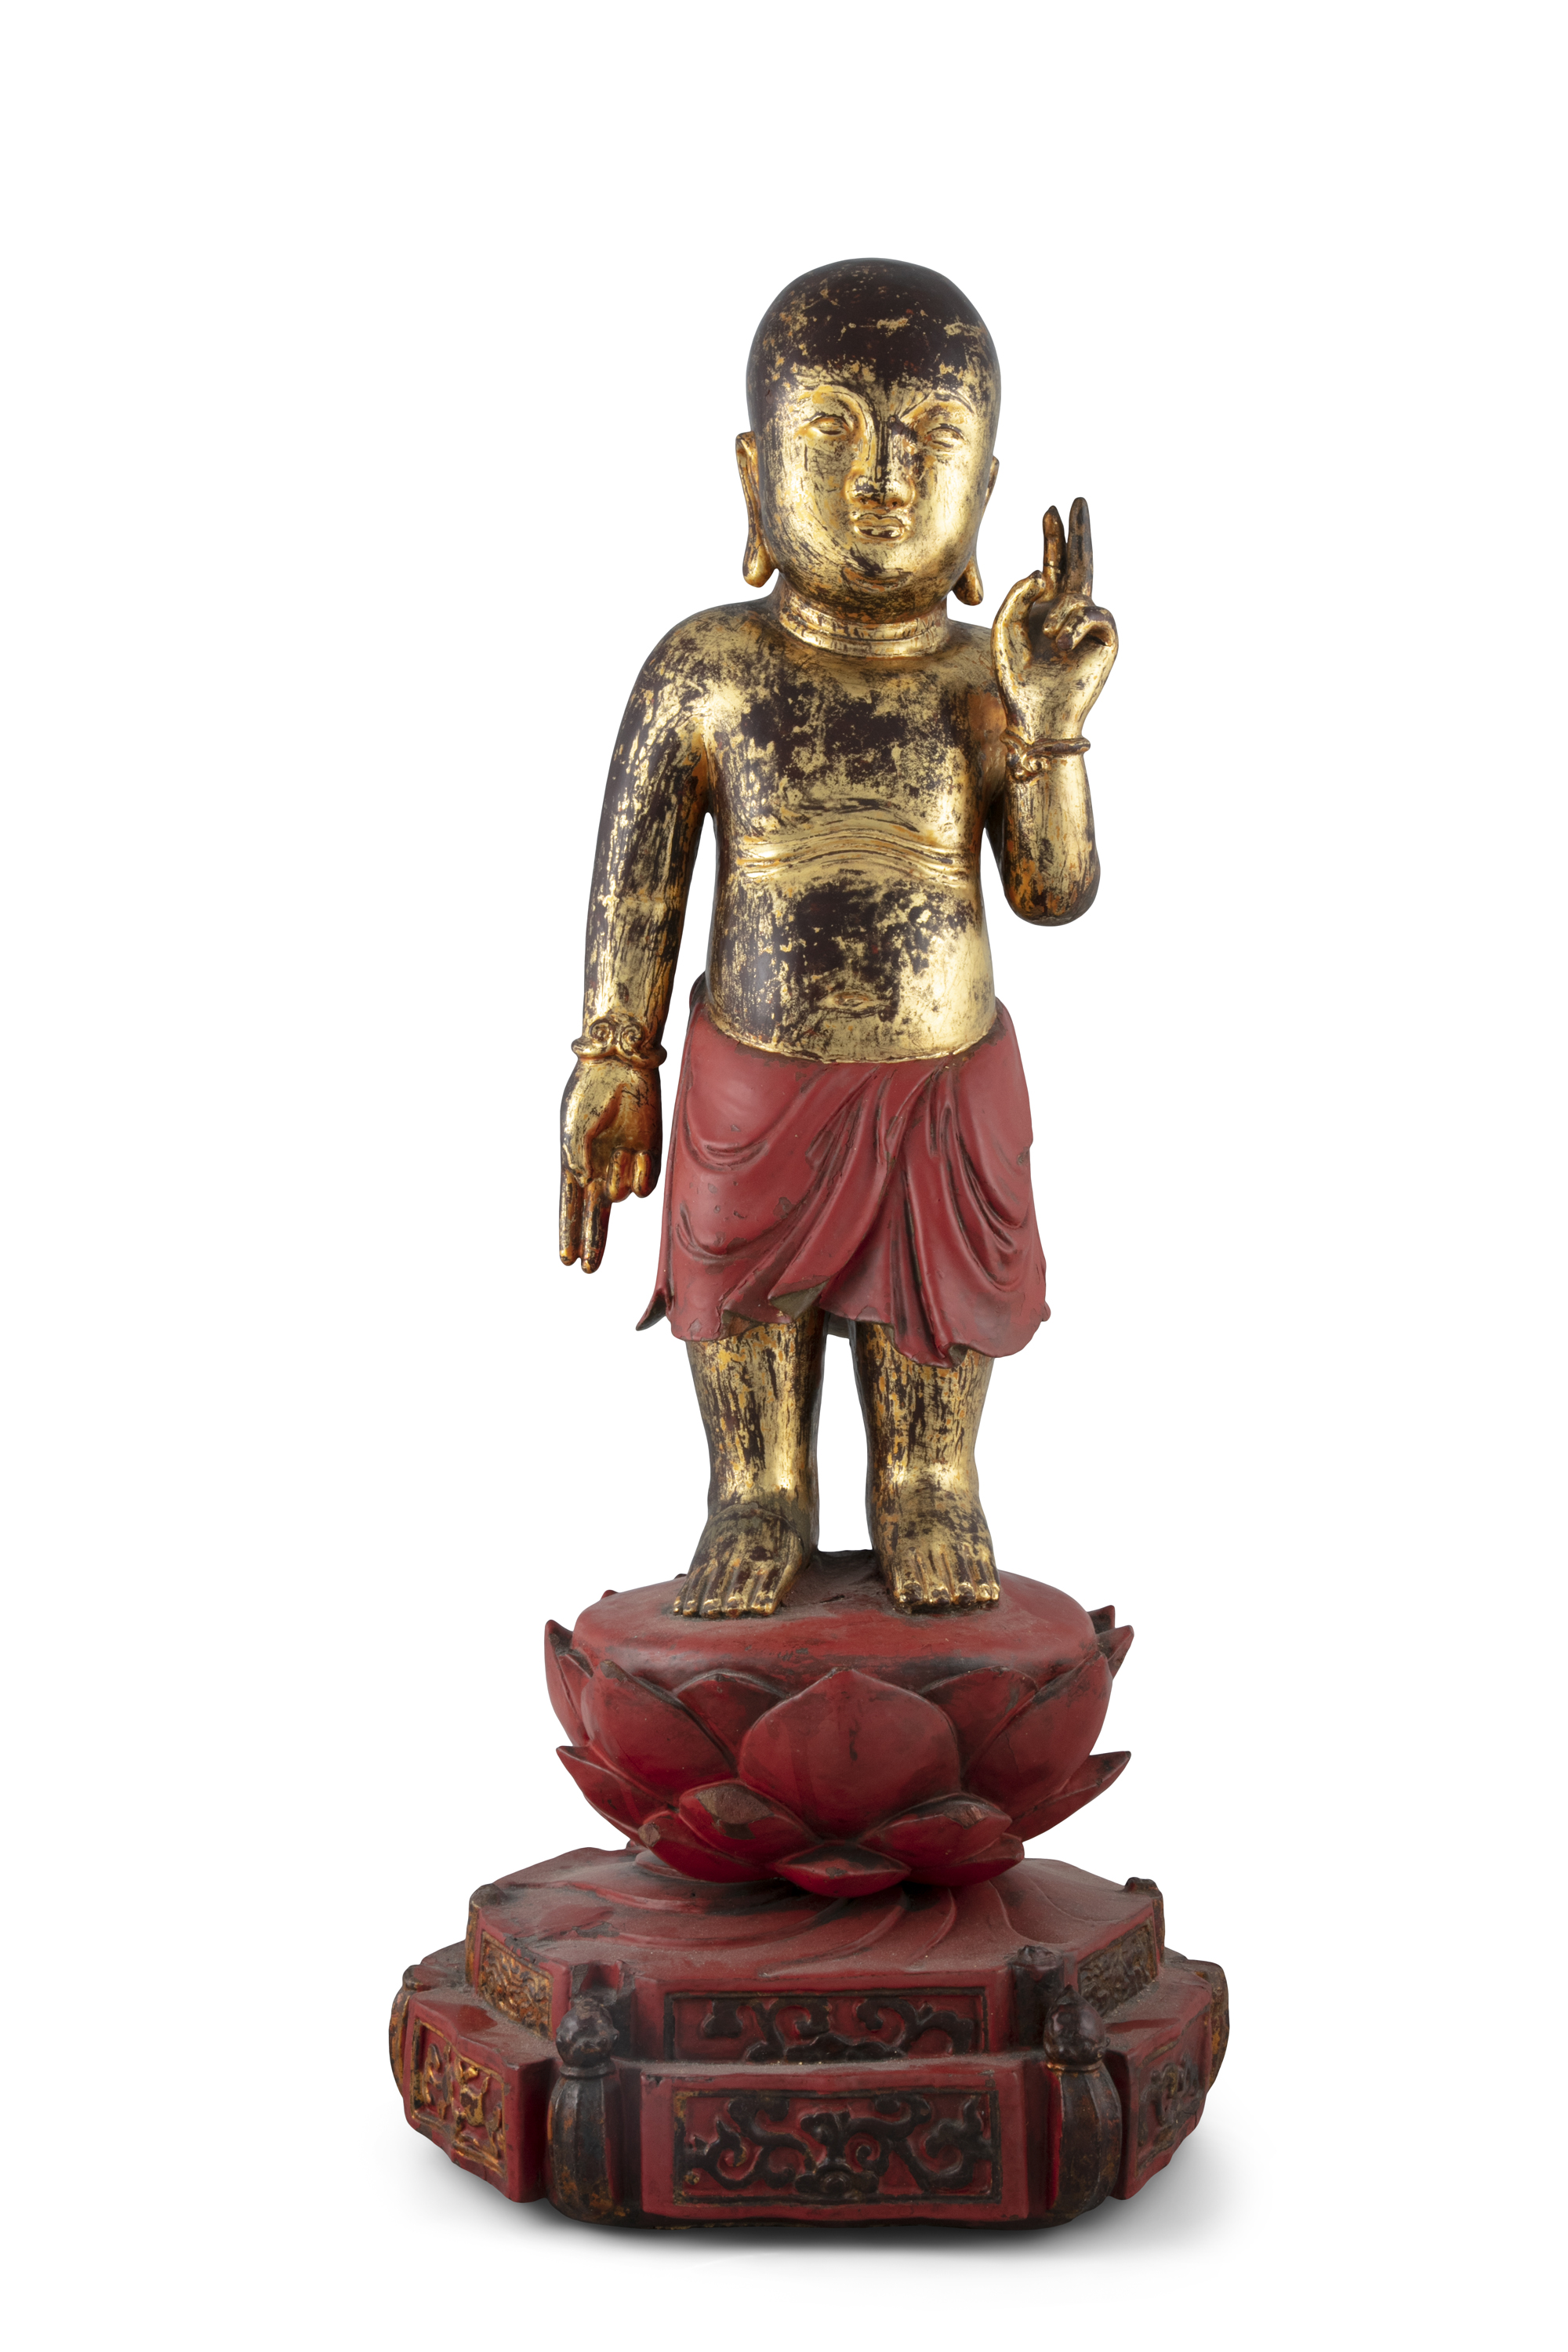 A LARGE GILT-LACQUERED WOODEN SCULPTURE OF THE STANDING INFANT BUDDHA China, Qing Dynasty (or - Image 4 of 20